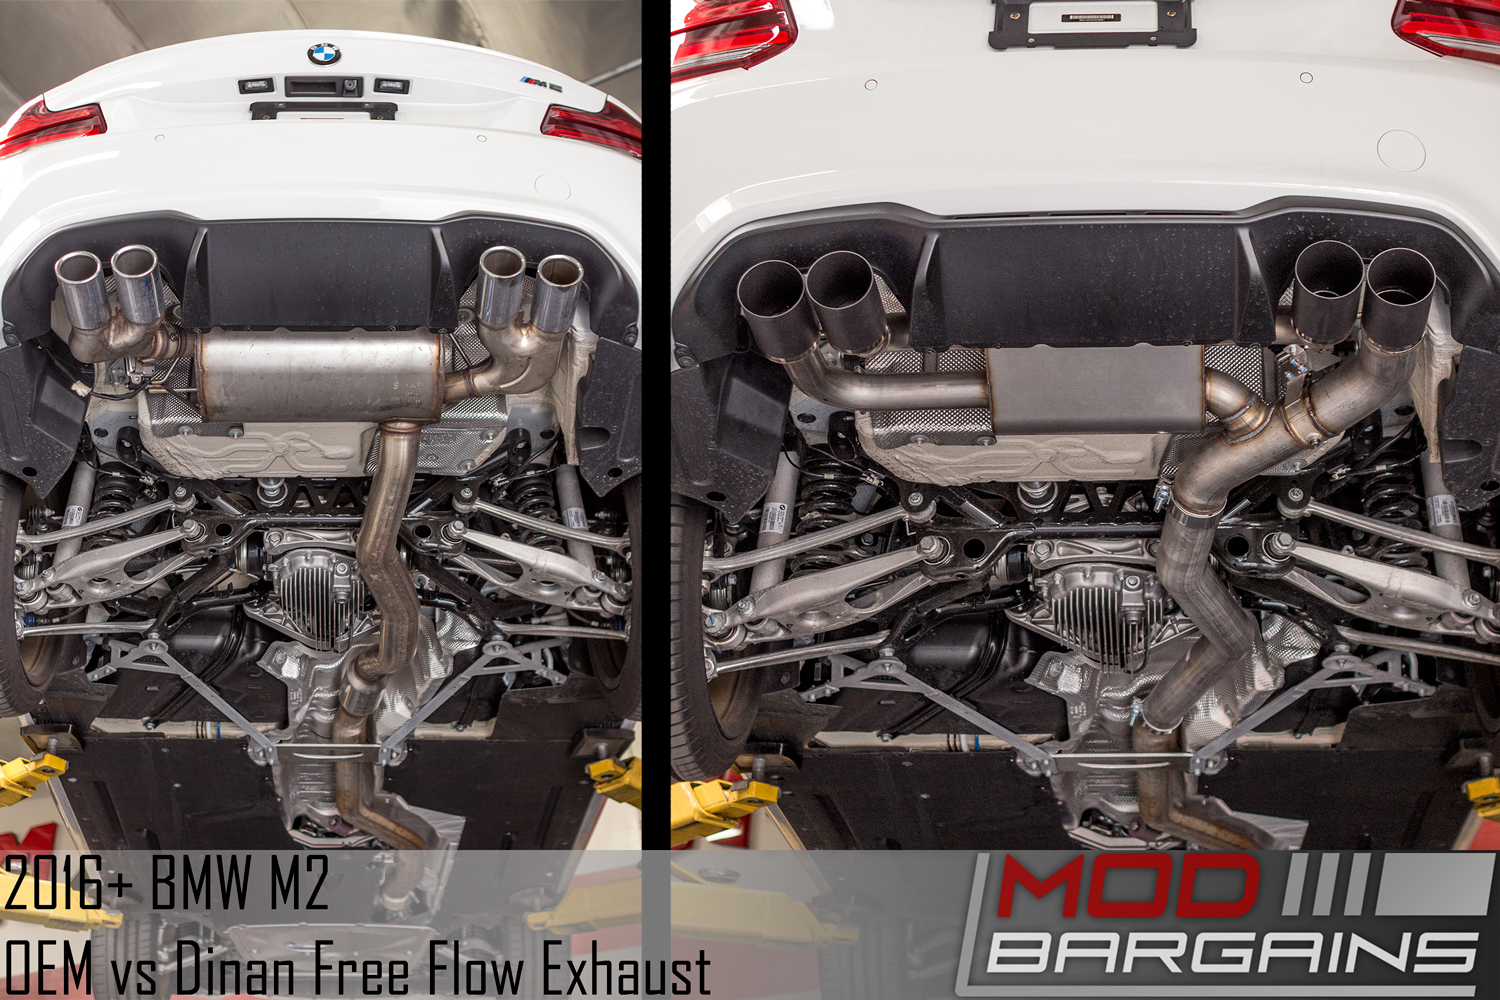 Dinan Free Flow Stainless Exhaust with Black Tips vs OEM